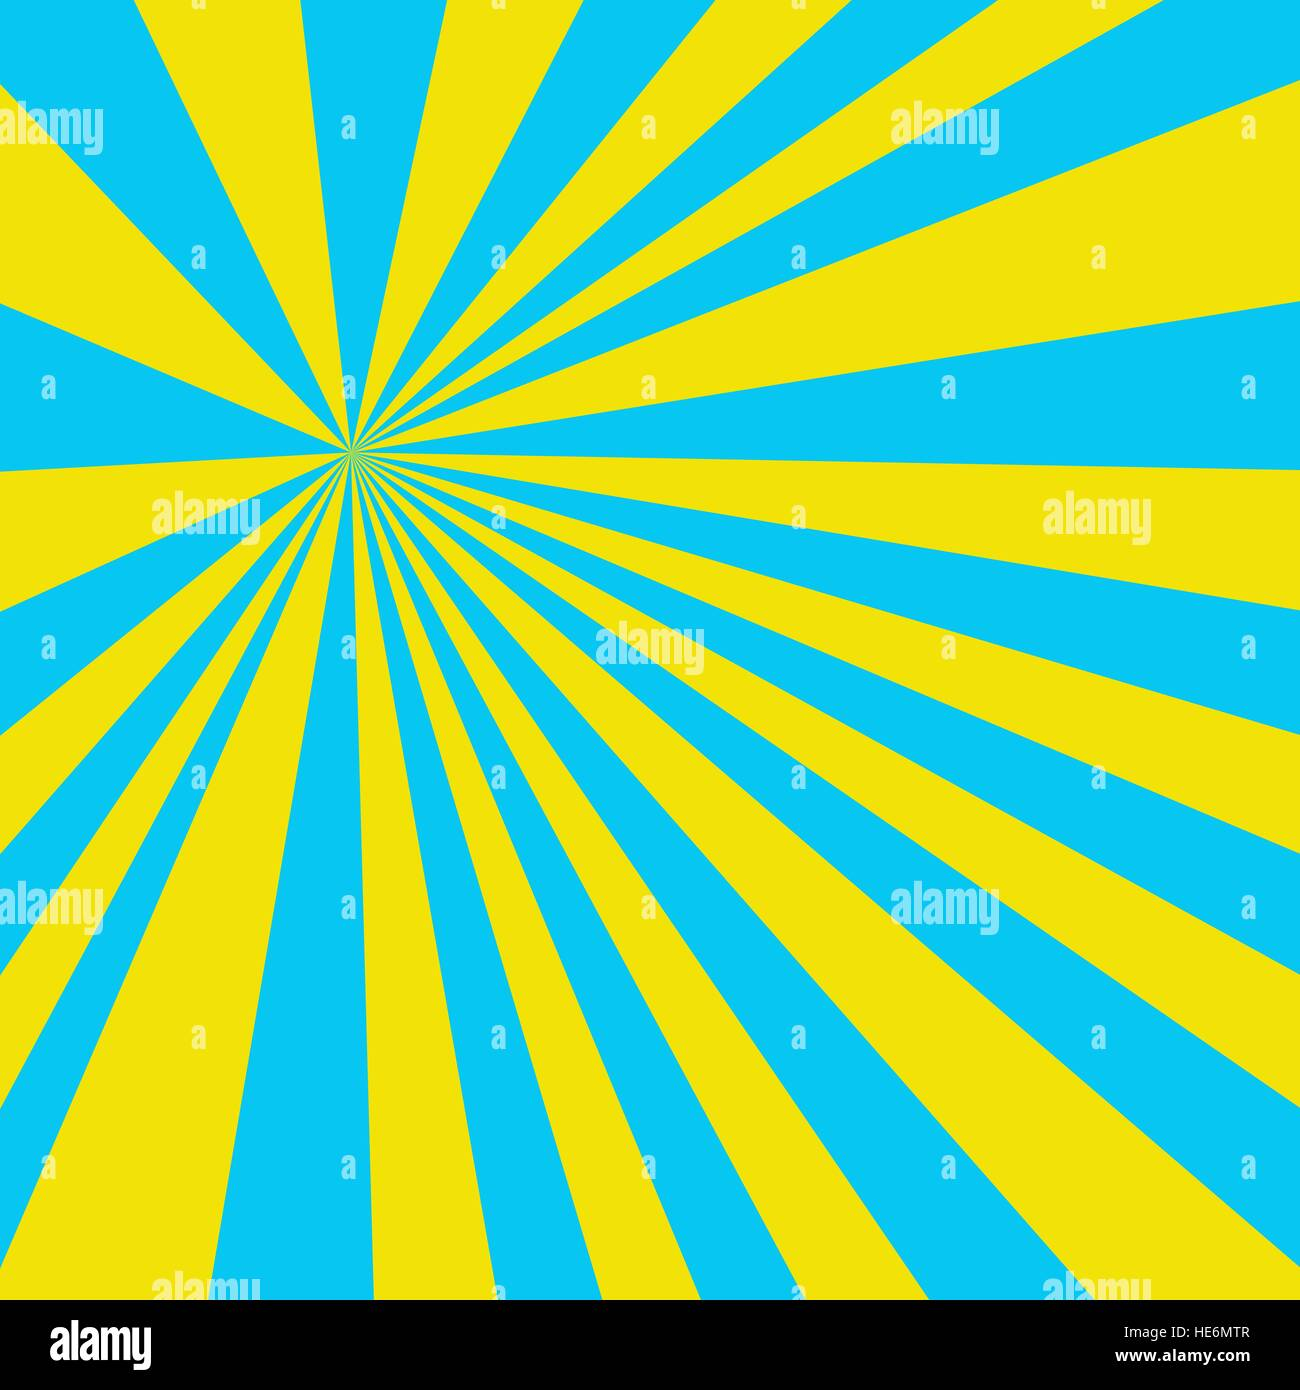 colored back pop art style light yellow blue background for comic